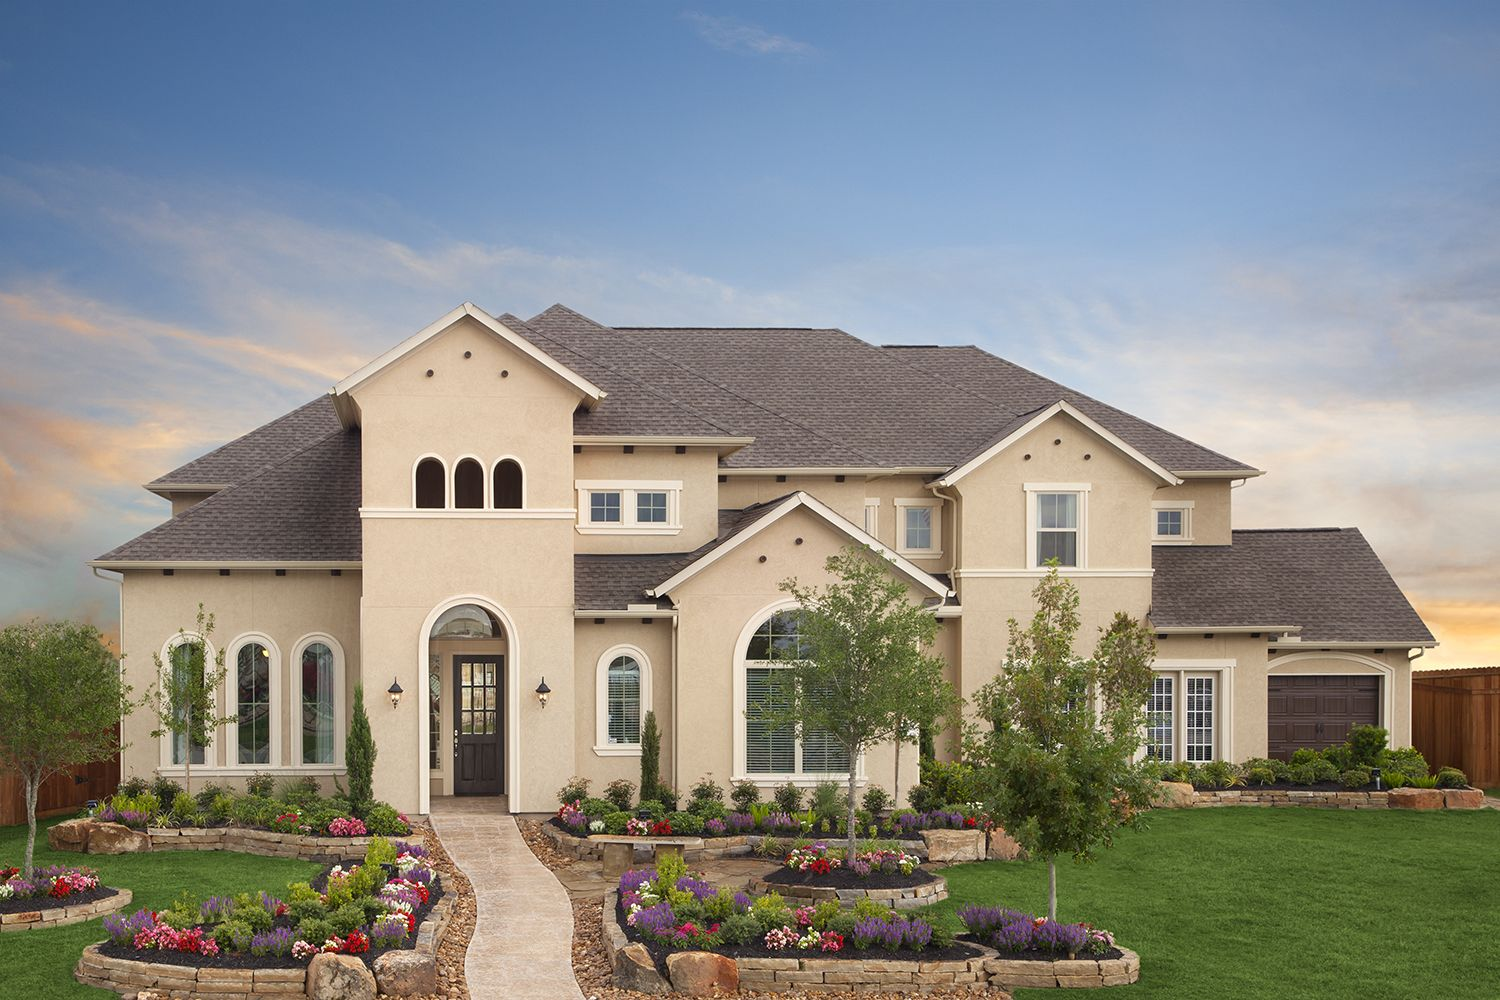 Coventry Homes In Towne Lake Cypress Tx Design 8310 Coventry Homes Home Builders Image House